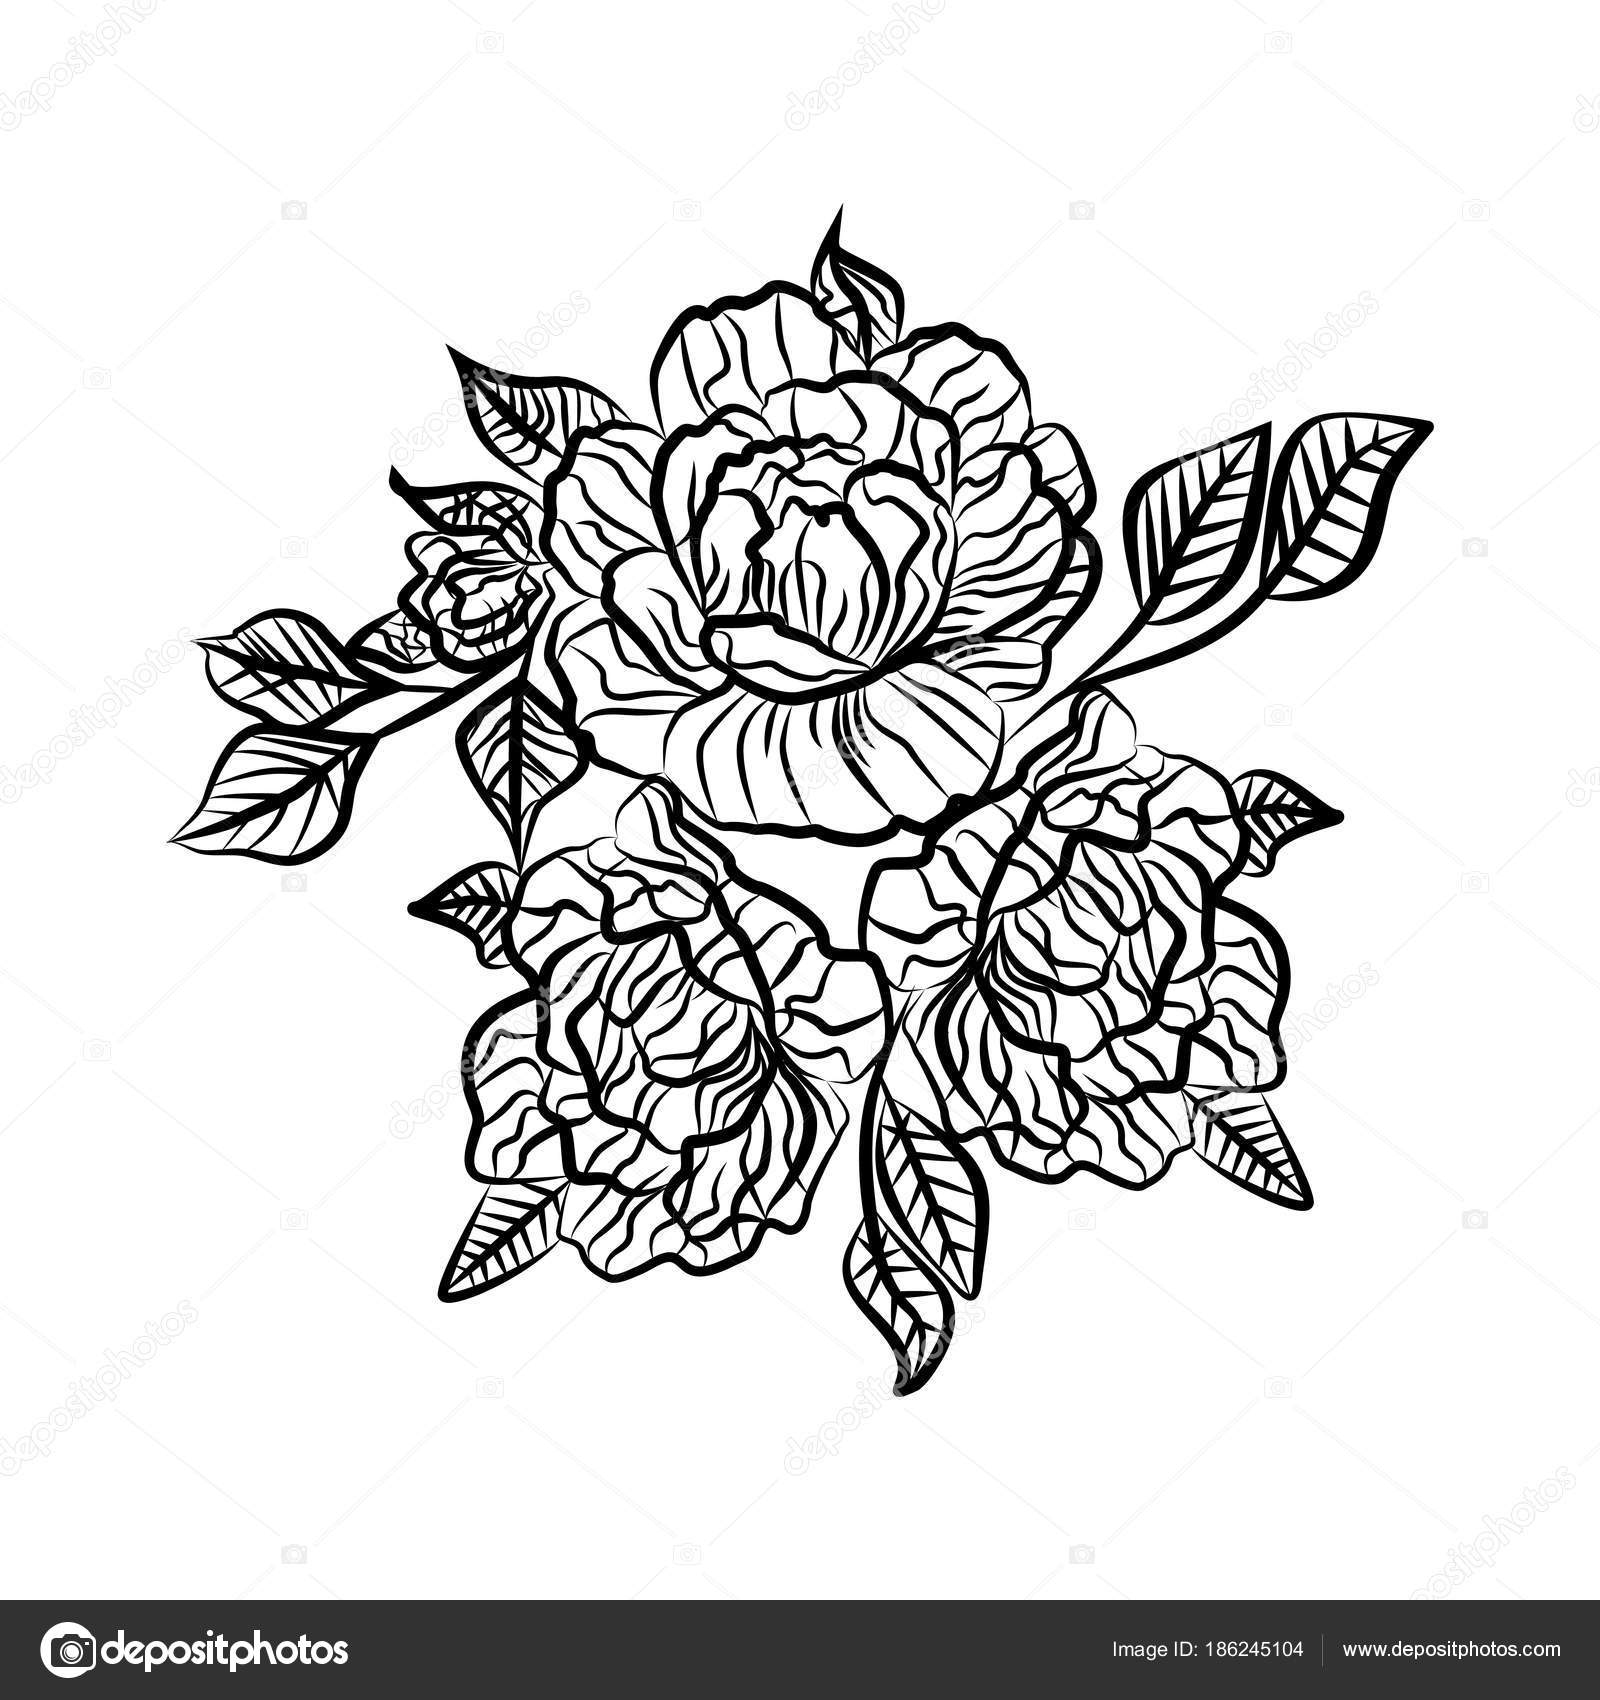 Black And White Drawing Of A Rose Tattoo Silhouette Of Branch With